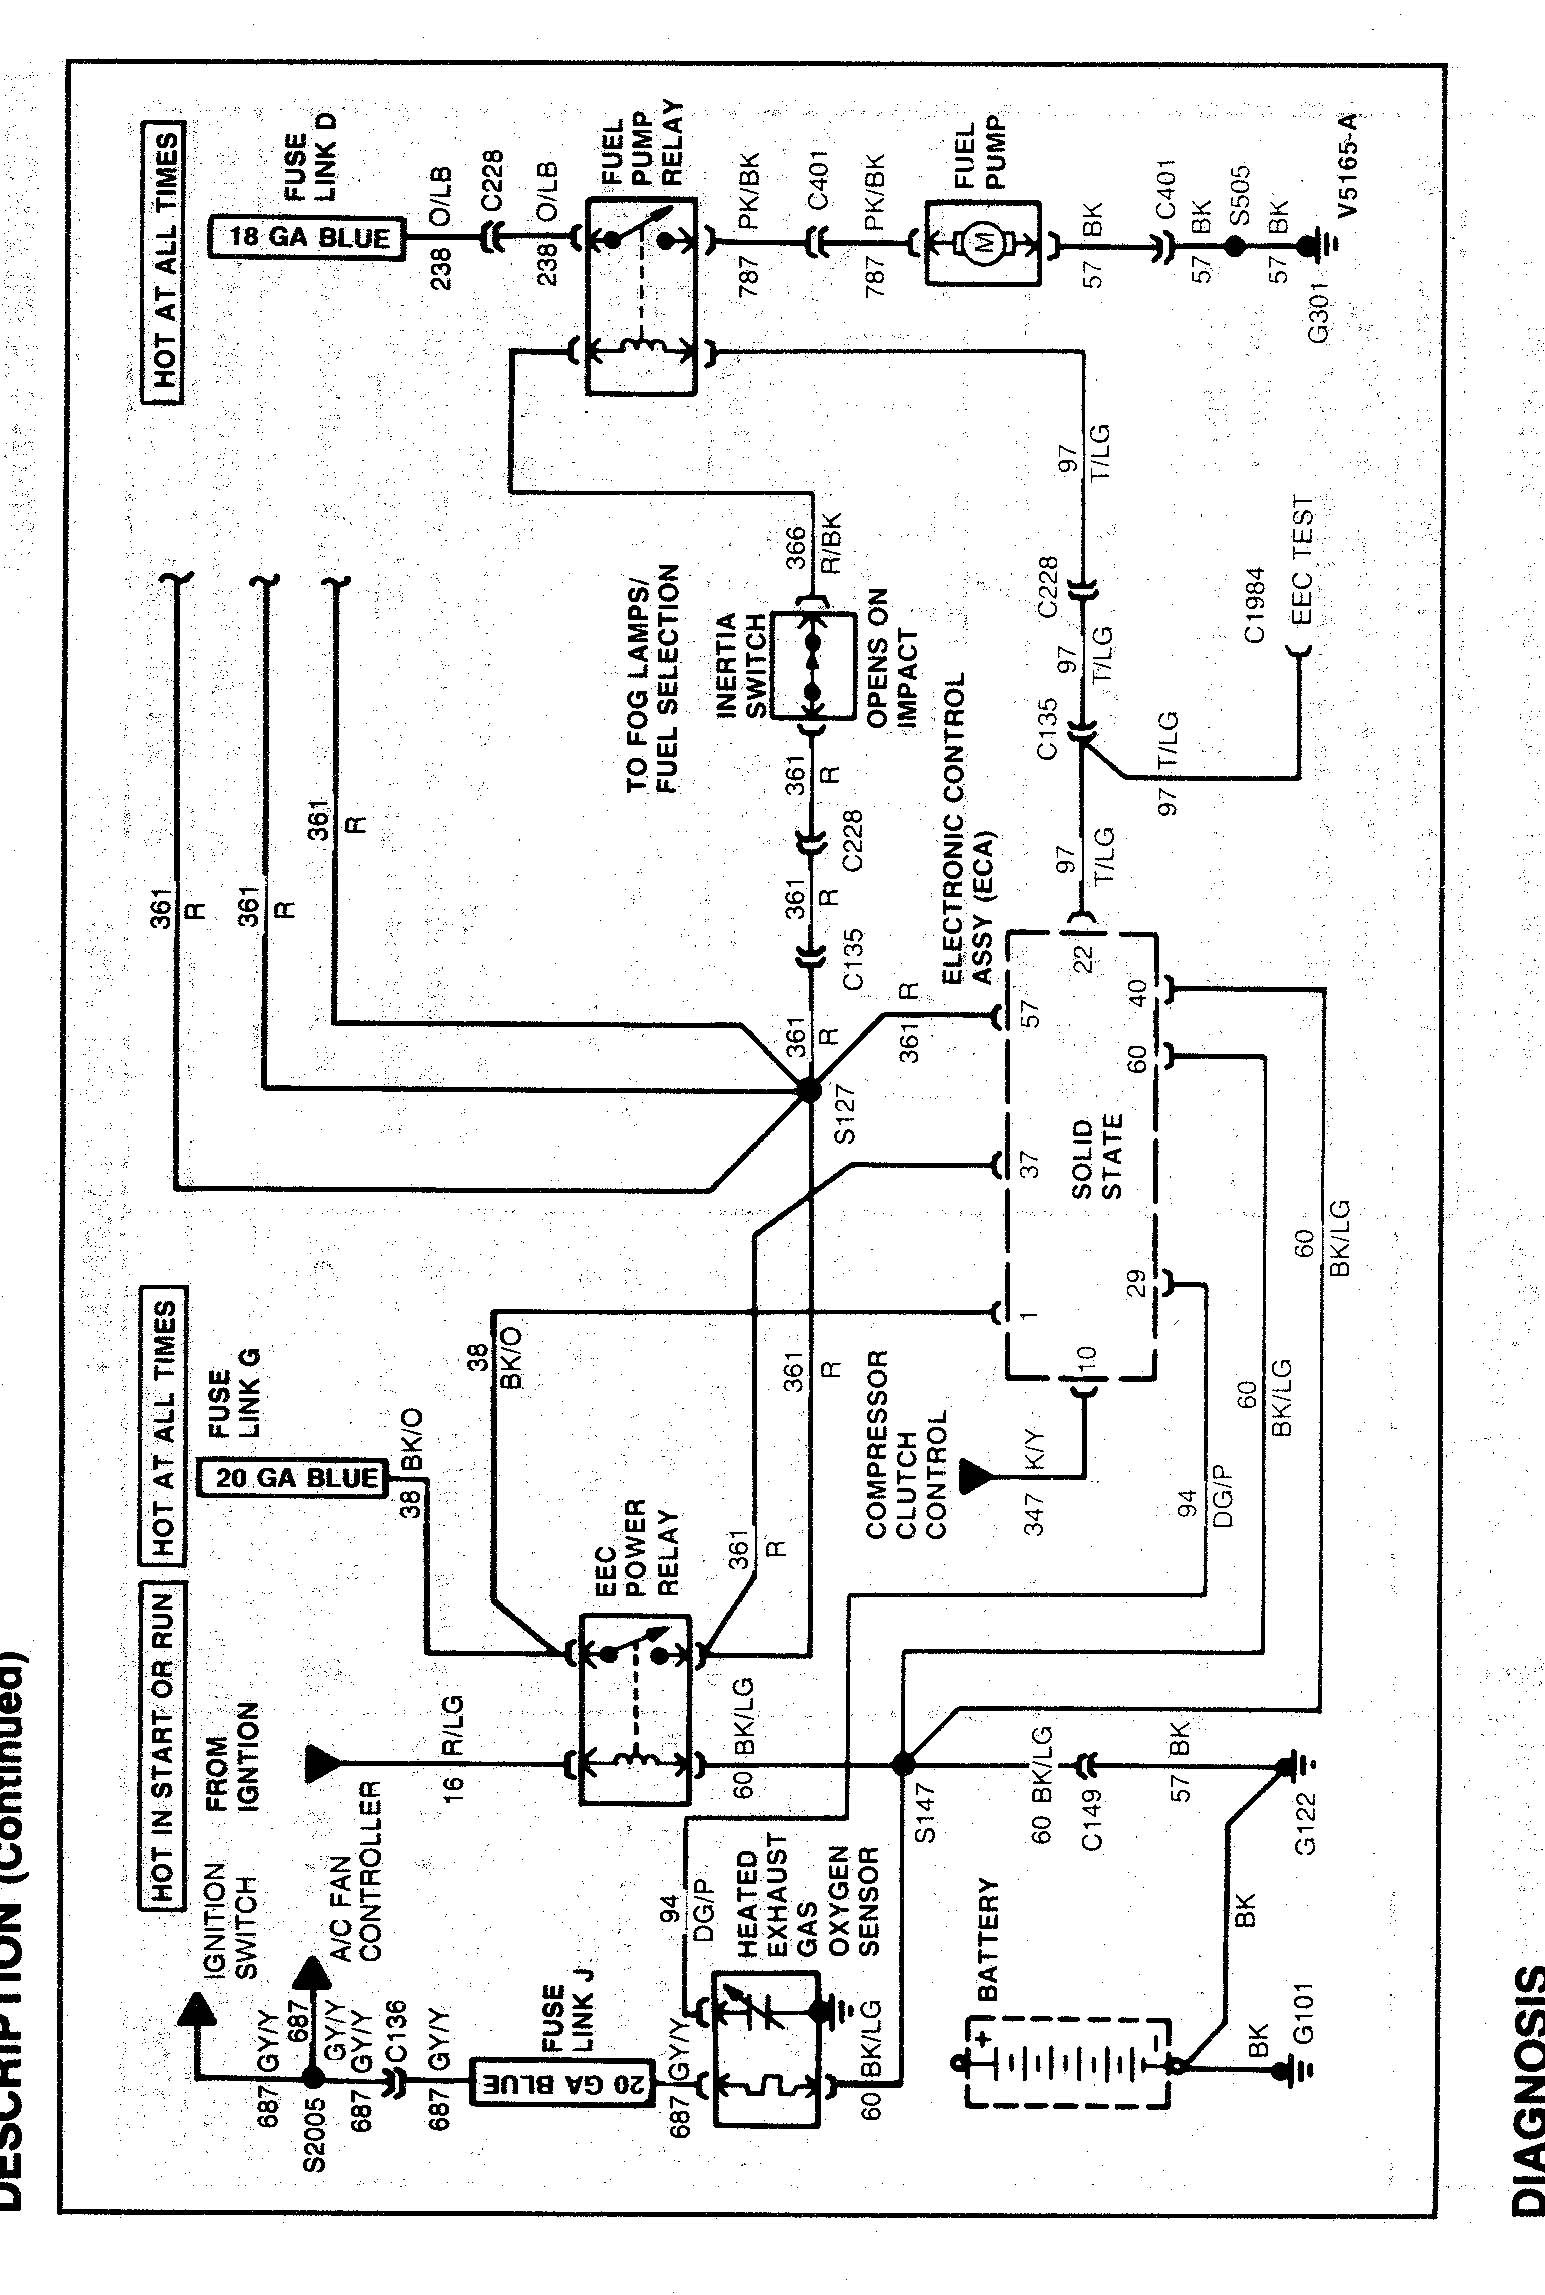 1928d1051592166 may electrical fuel pump but im not sure mustangfuelelectricaldiagram2 wiring diagram for 91 mustang fuel pump relay readingrat net 1991 ford mustang wiring diagram at edmiracle.co